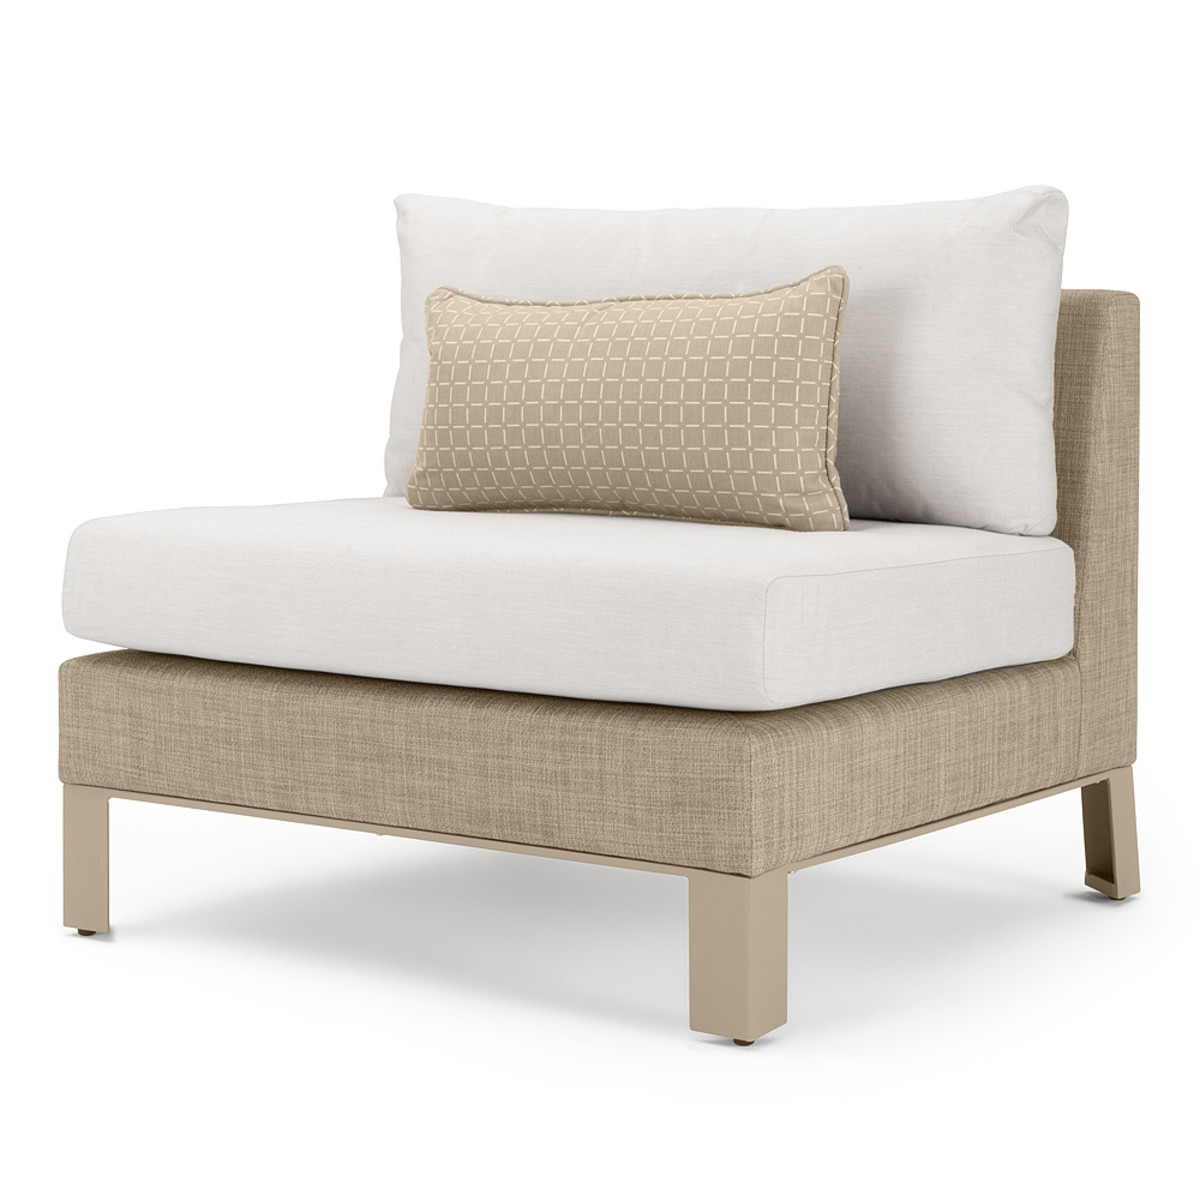 Portofino Sling 6pc Sectional – Beige Fennel